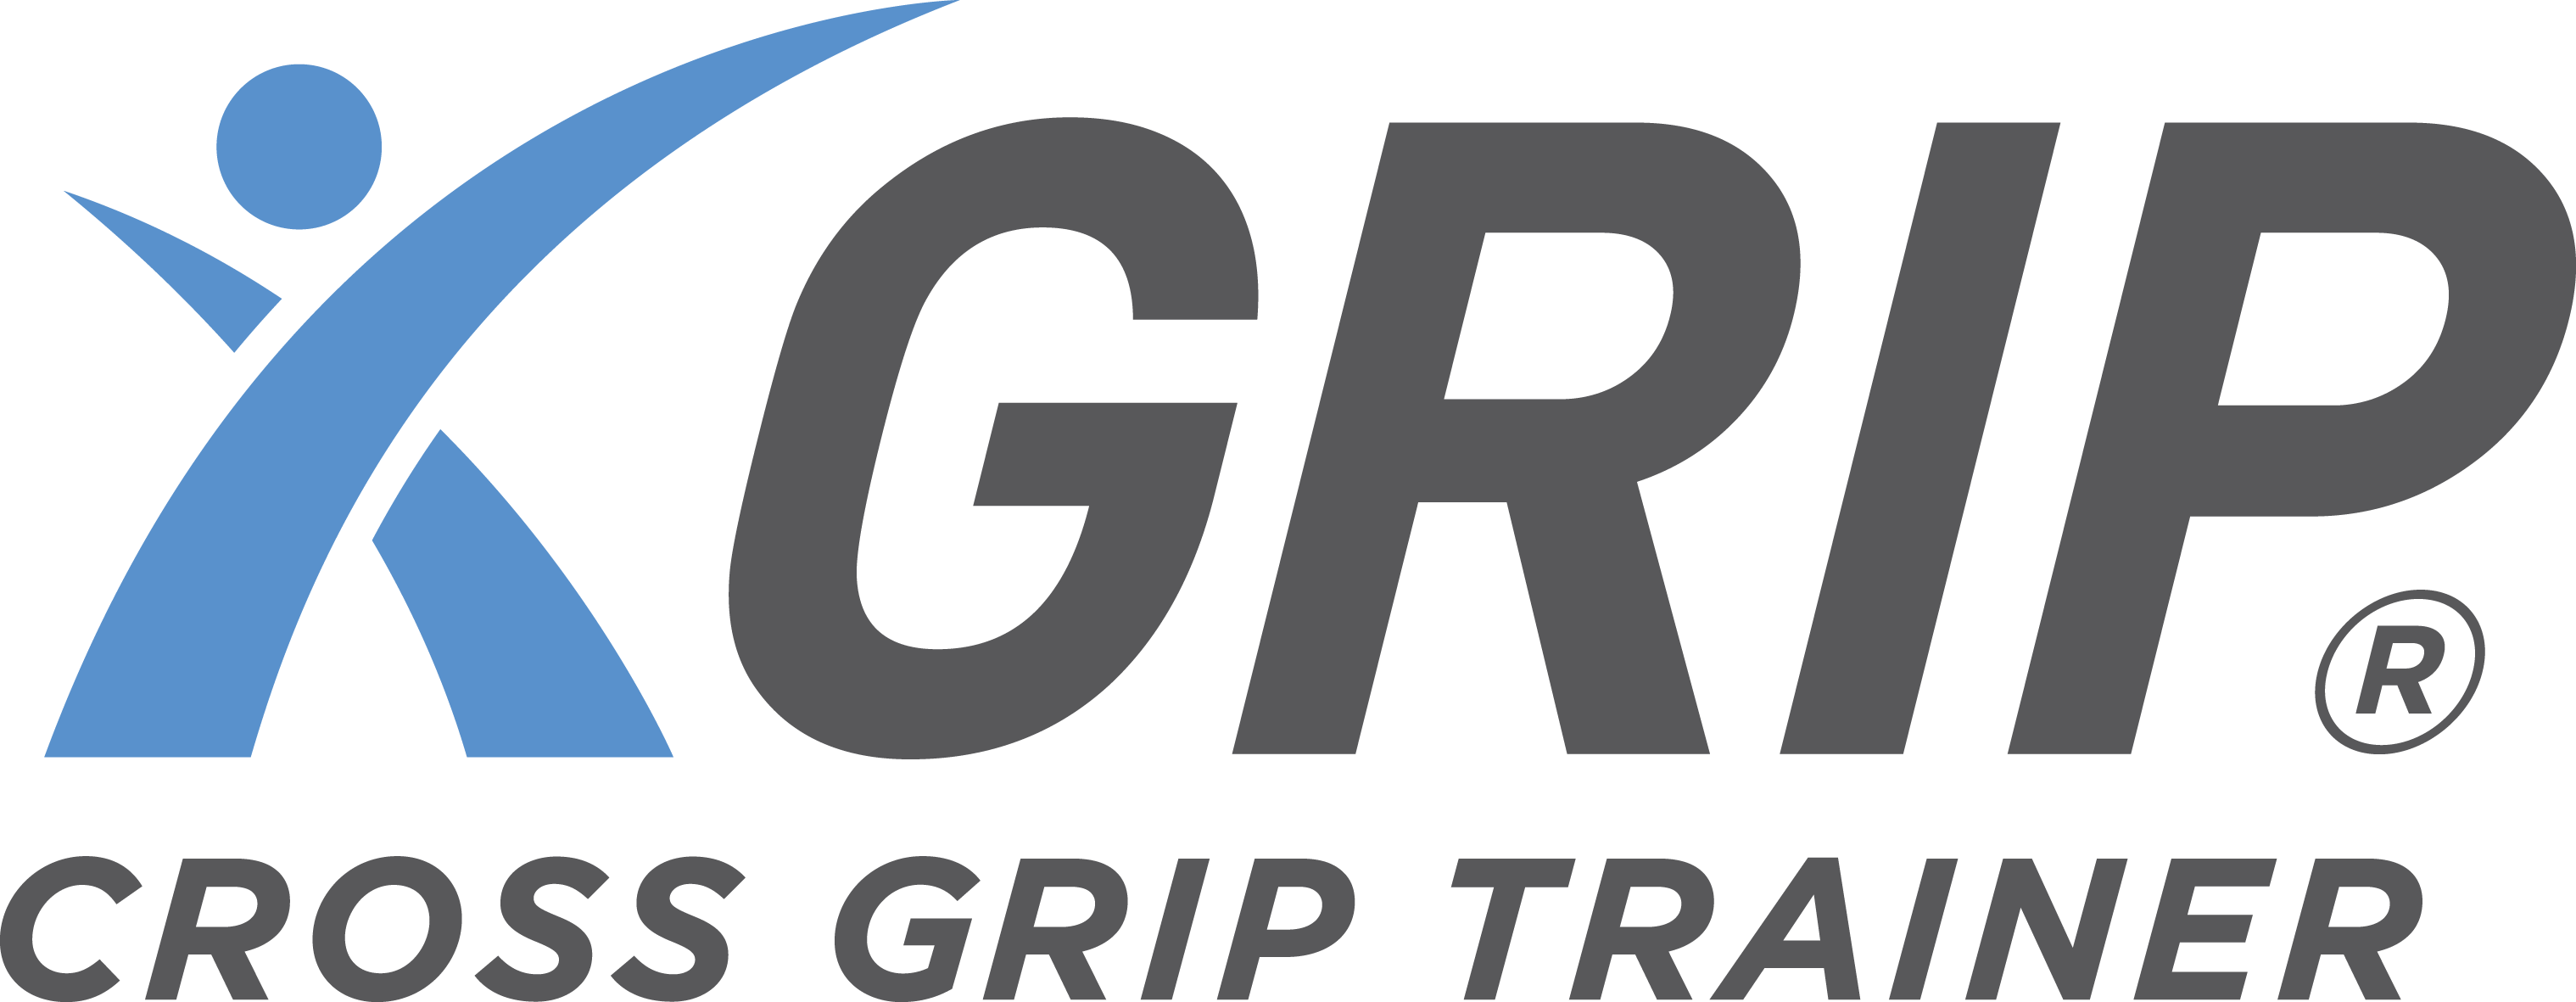 Logo: XGrip Trainer - Cross Grip Trainer